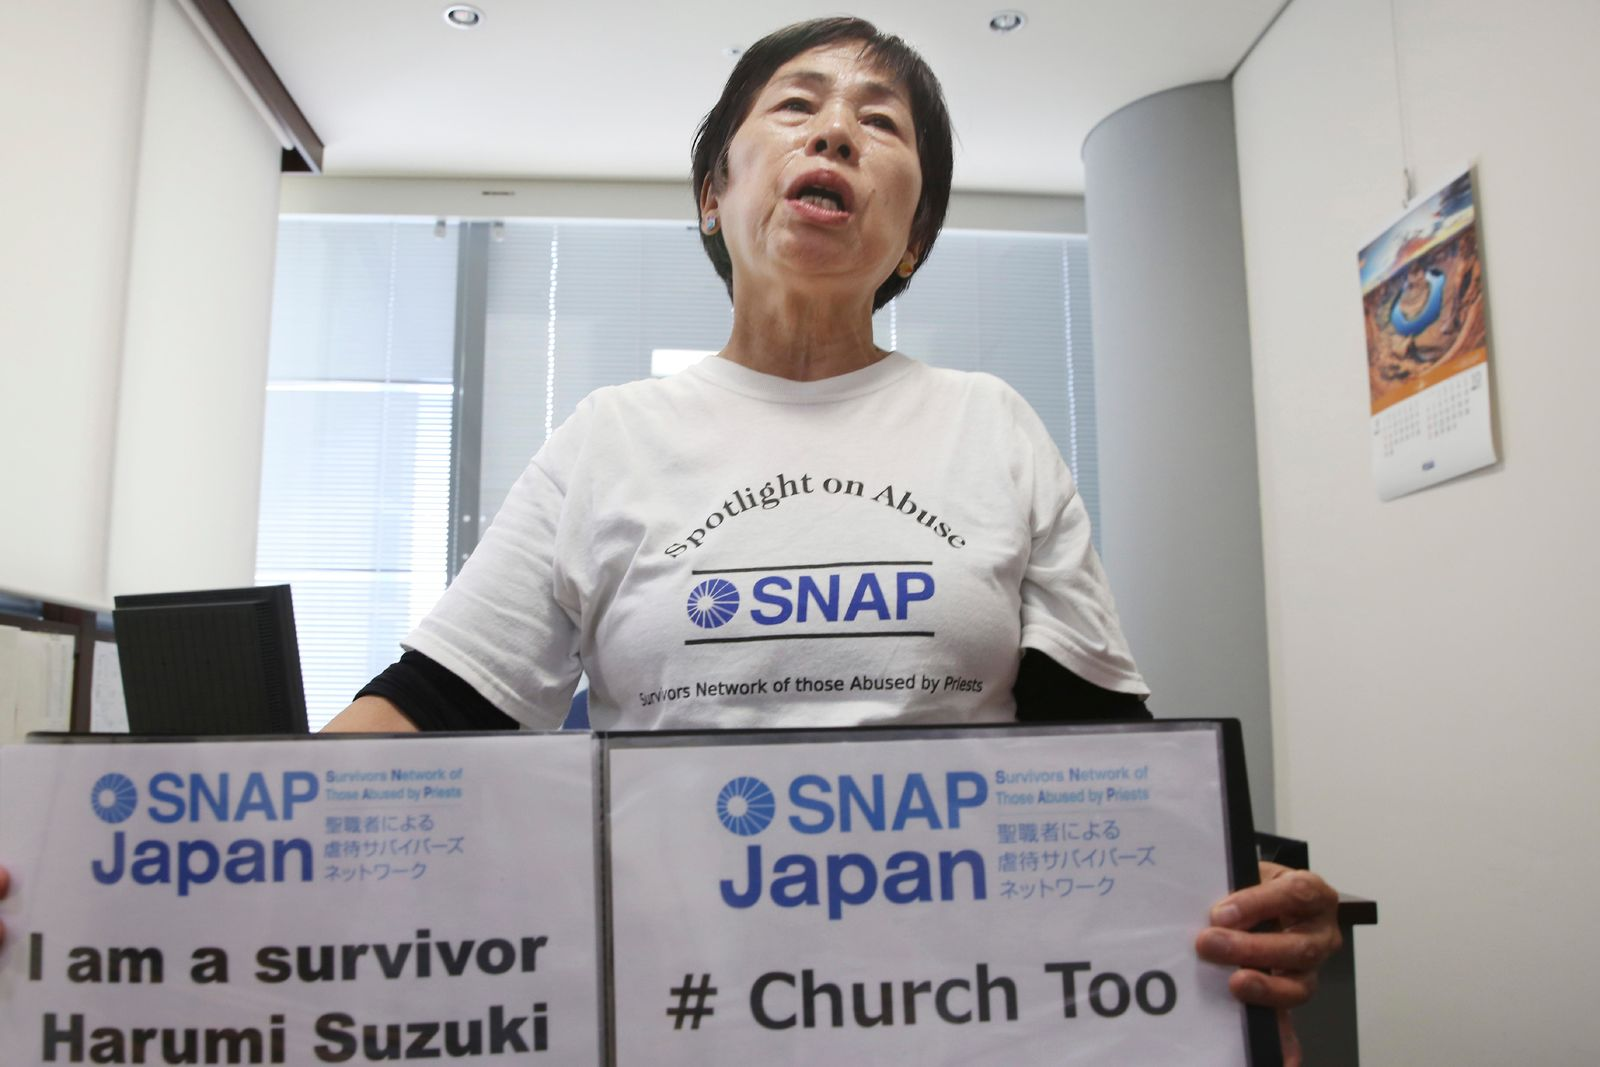 In this Nov. 25, 2019, photo, Survivors Network of Those Abused by Priests (SNAP) Japan local leader Harumi Suzuki holds signs while speaking during an interview with The Associated Press in Tokyo. Suzuki and Katsumi Takenaka are among a handful of people who have gone public as survivors of Catholic clergy sexual abuse in Japan. They held signs, when Pope Francis visited recently, standing where his motorcade passed, but in different spots and days. But they are starting to feel less alone. The Japanese bishops conference launched a nationwide investigation into sexual abuse of women and children this year, responding to the Vatican's demand for an urgent response to the global crisis. (AP Photo/Koji Sasahara)